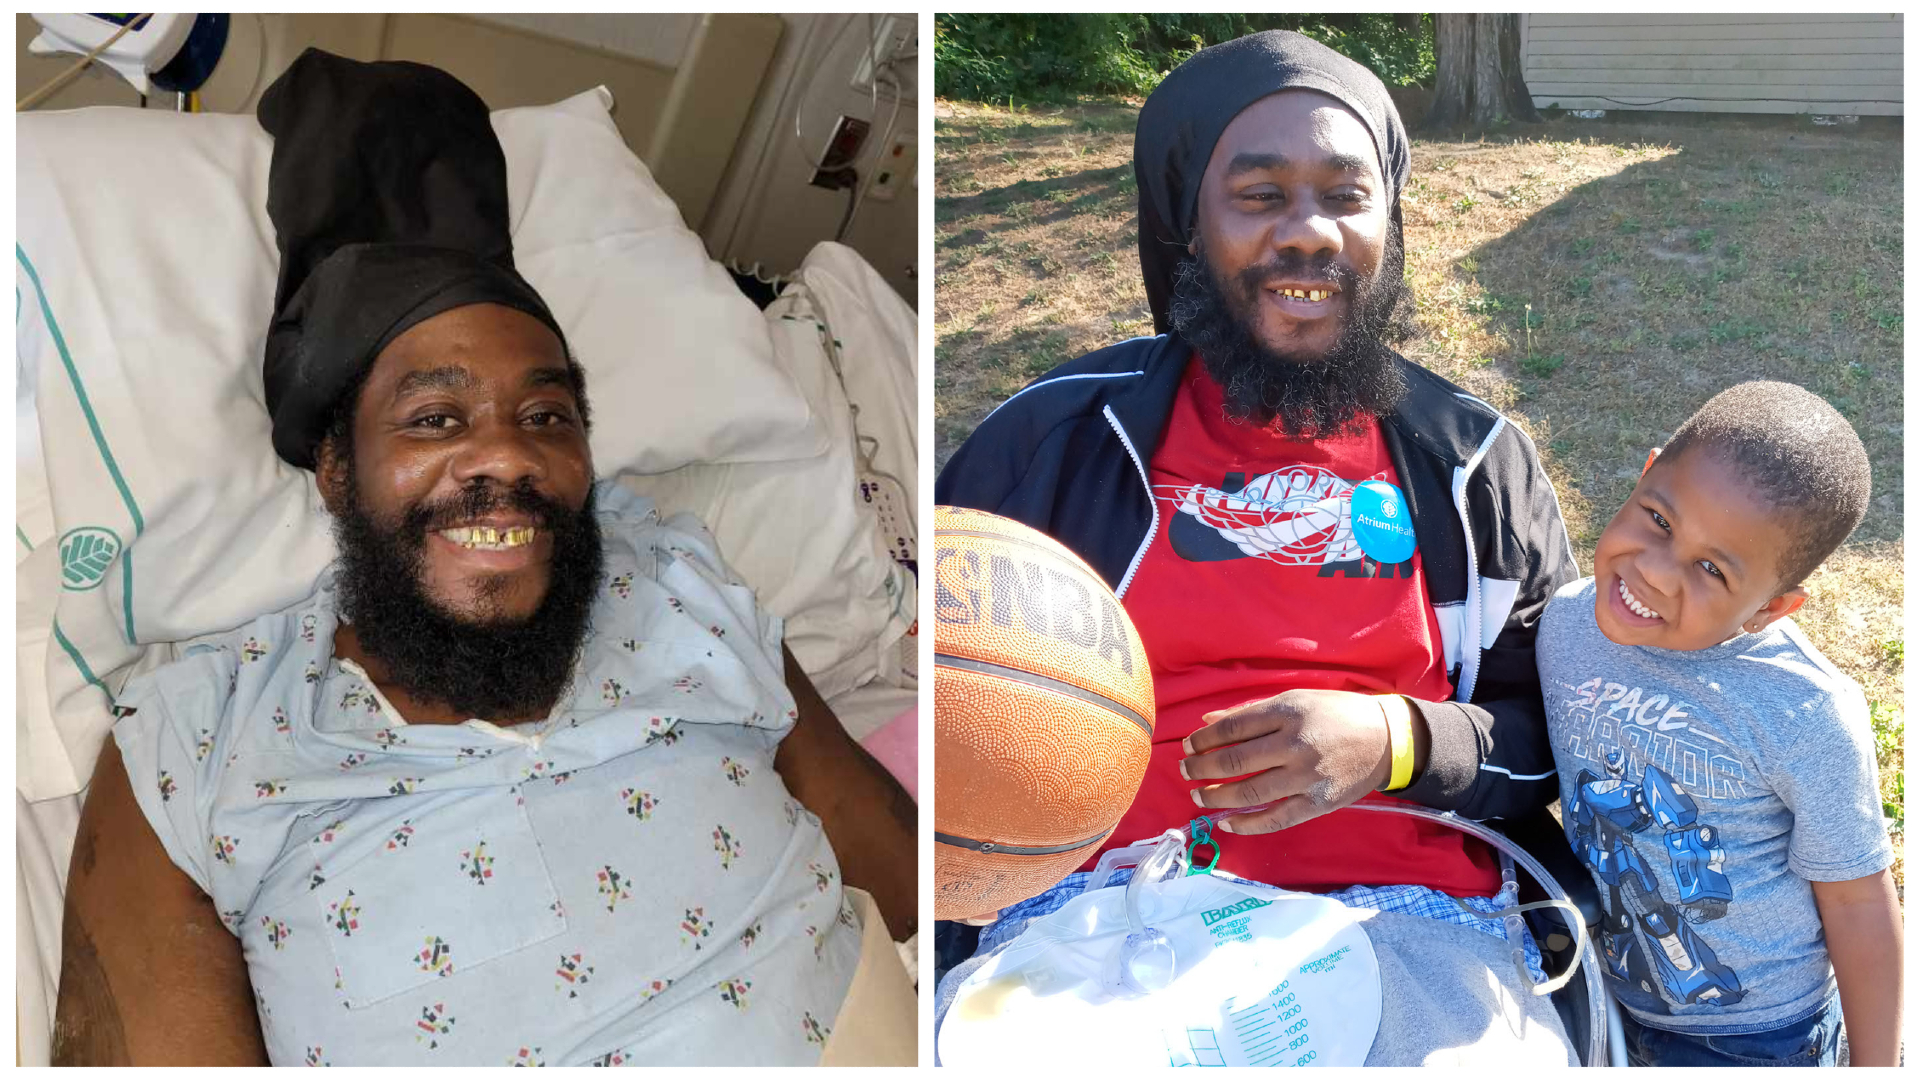 Expert care from the team at Atrium Health Carolinas Medical Center – the region's only Level I Trauma Center – helped Timothy survive from life-threatening injuries after he was shot five times during a home invasion.